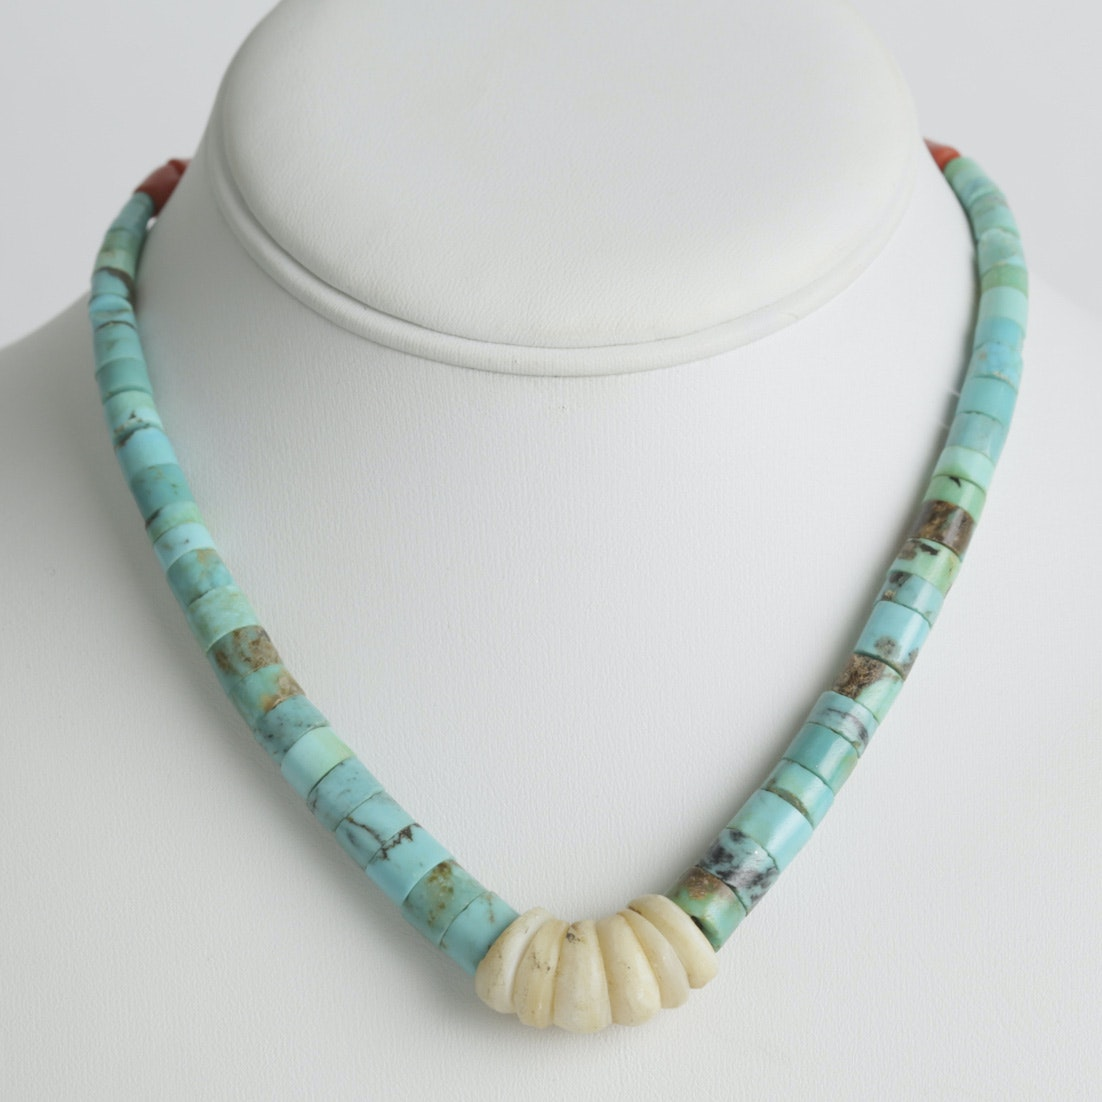 Vintage 900 Silver Howlite, Coral, and Mother of Pearl Necklace